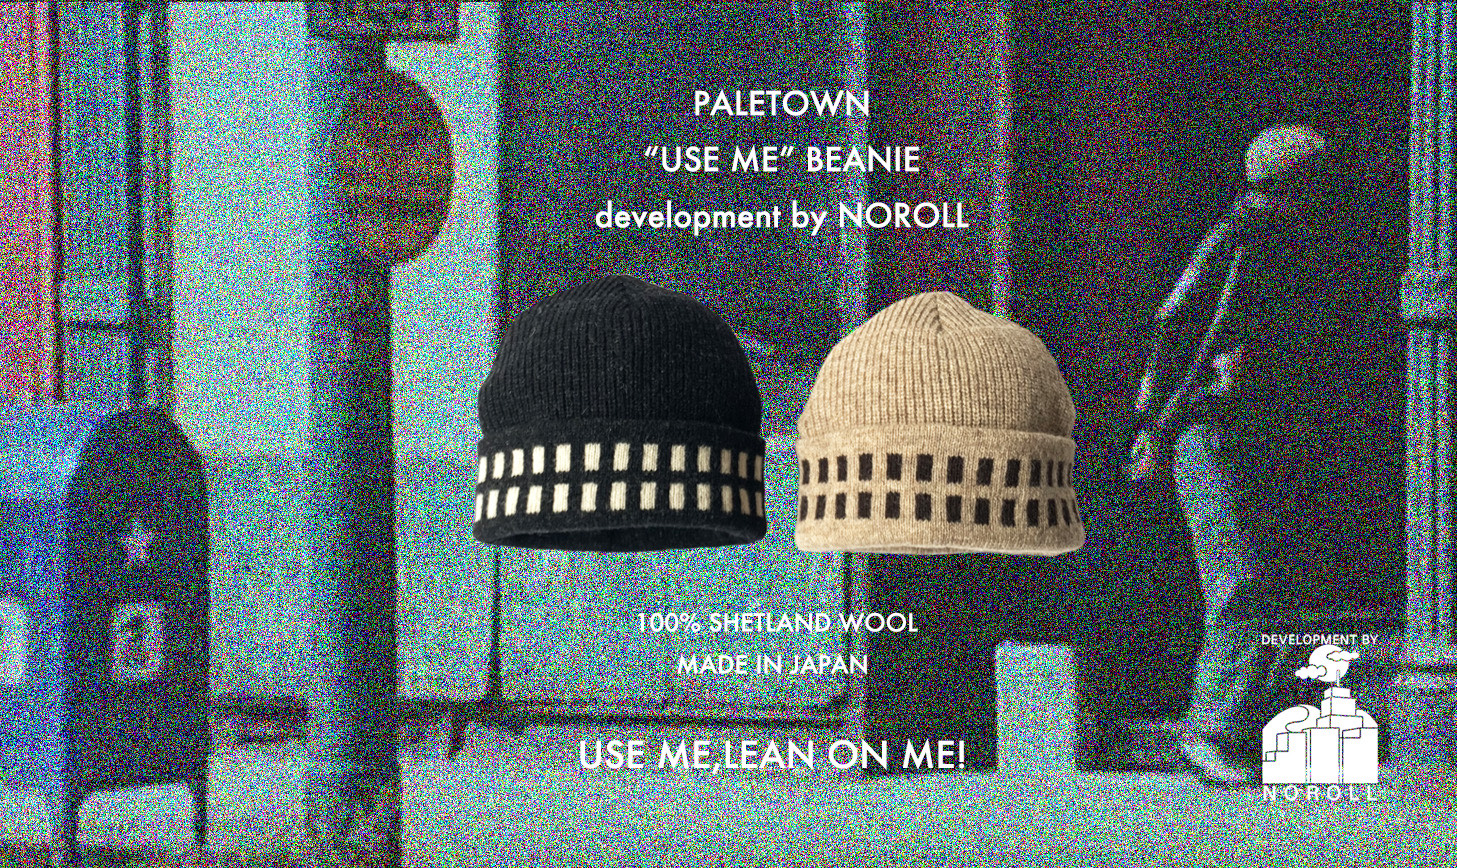 PALETOWN NOROLL USE ME